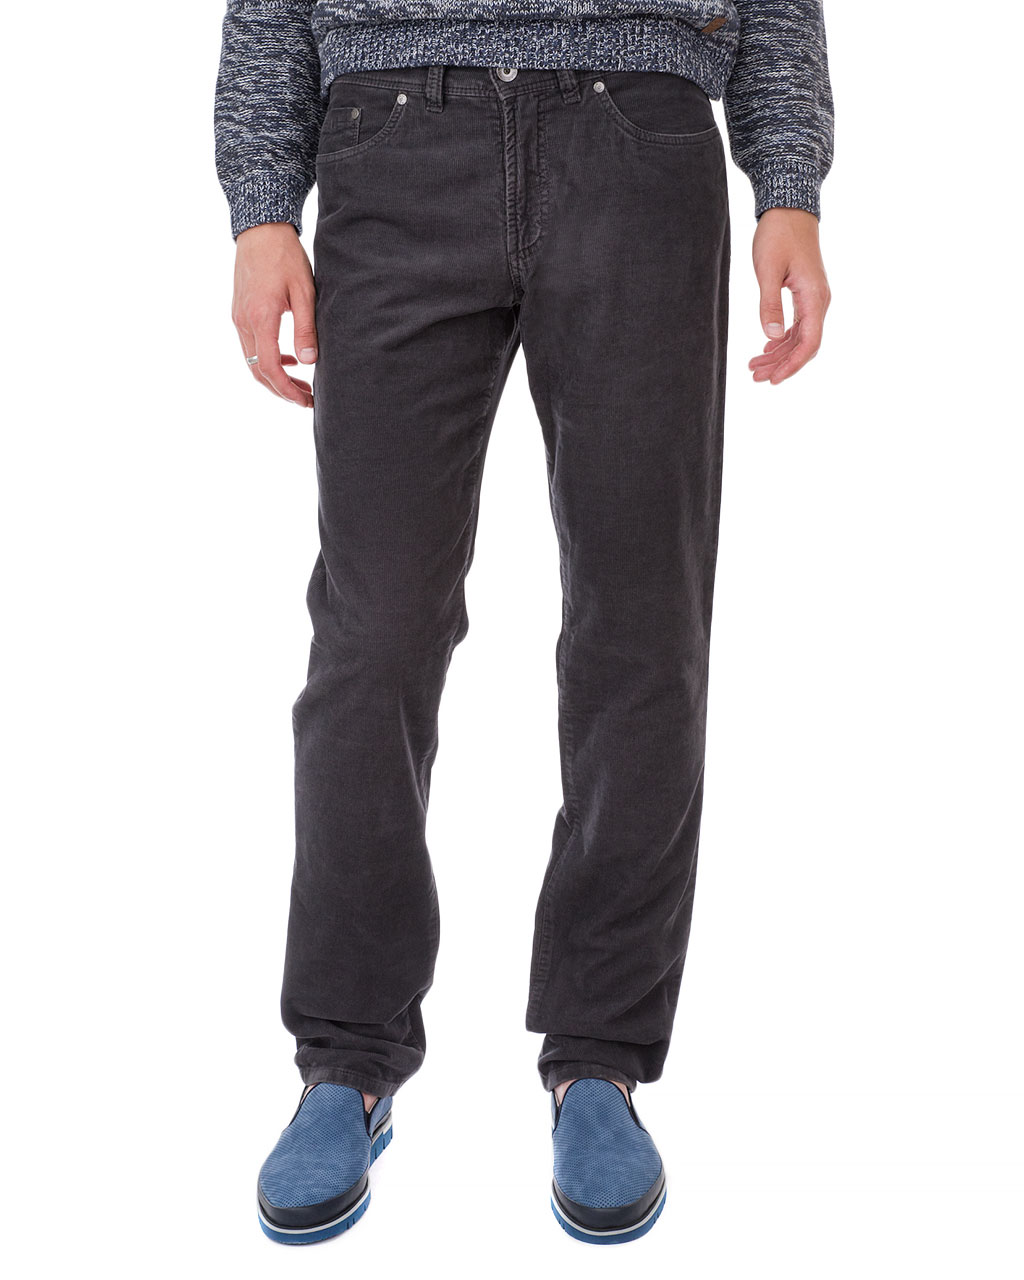 Men's trousers NEVIO-8 43124-98/19-20 (1)